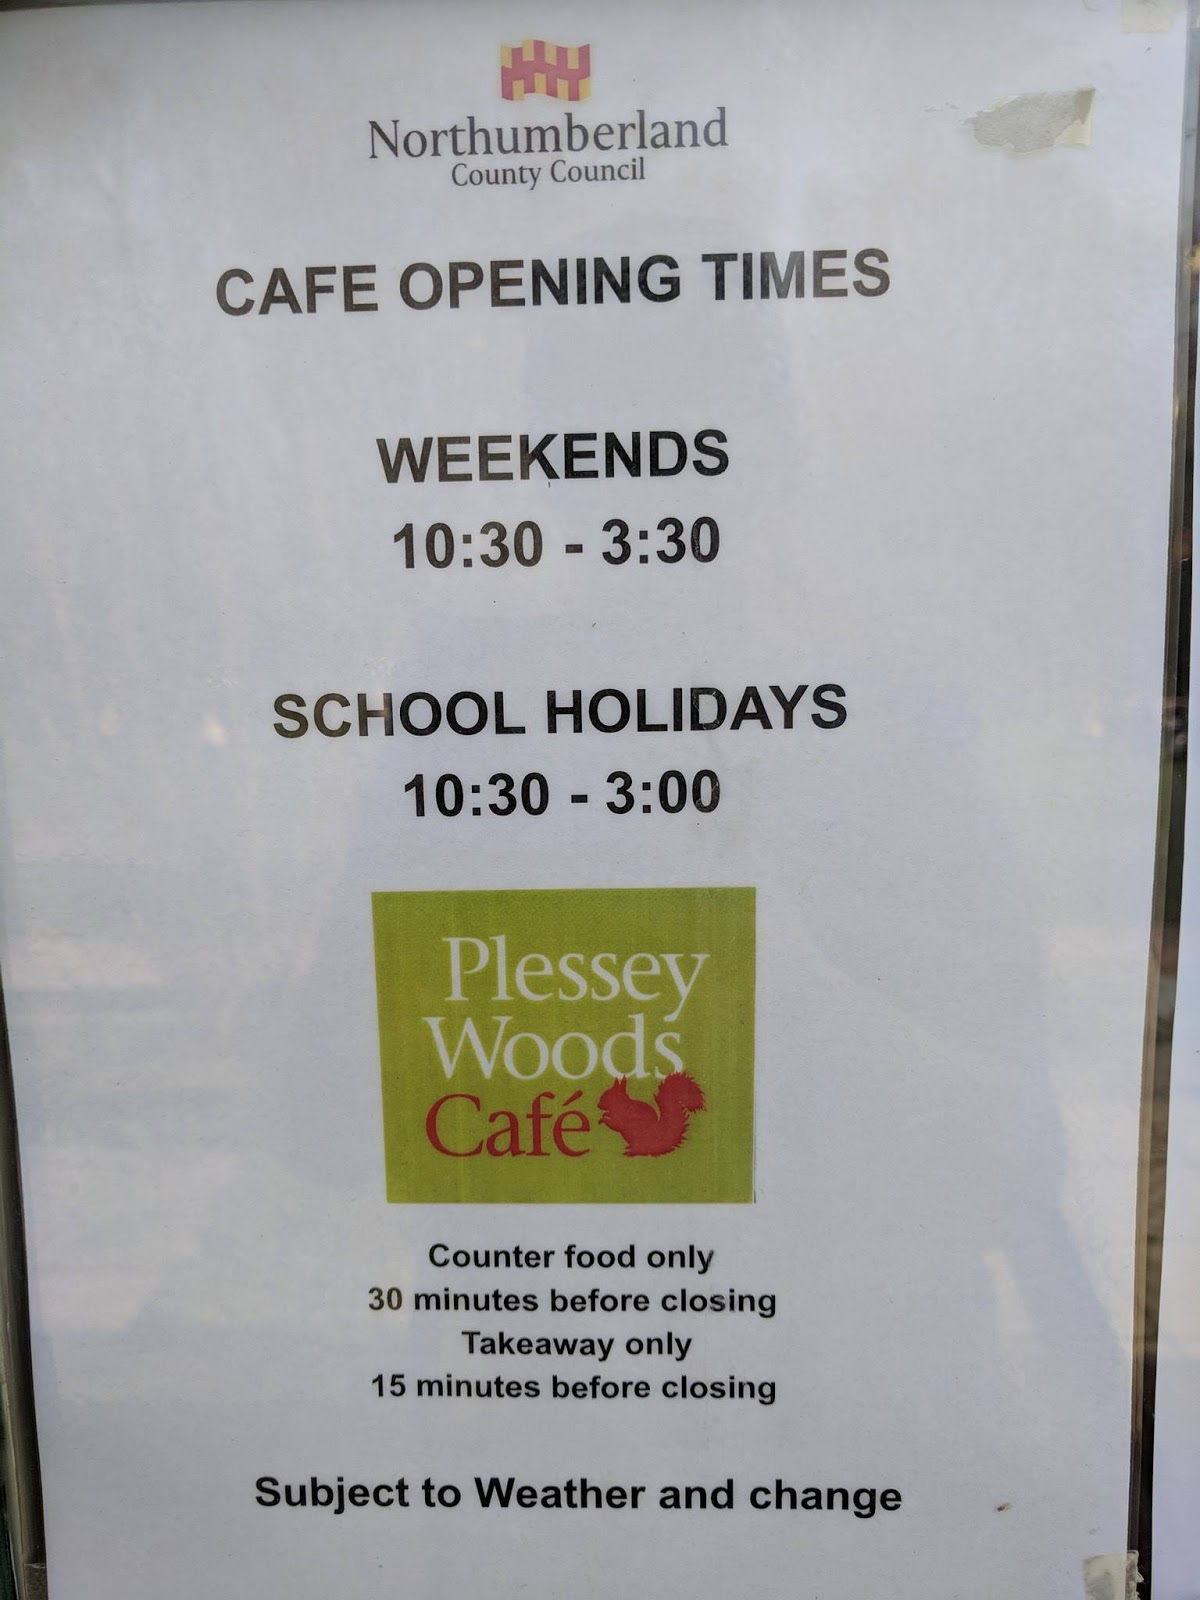 Plessey Woods Art Trail & New Play Park  - cafe opening times